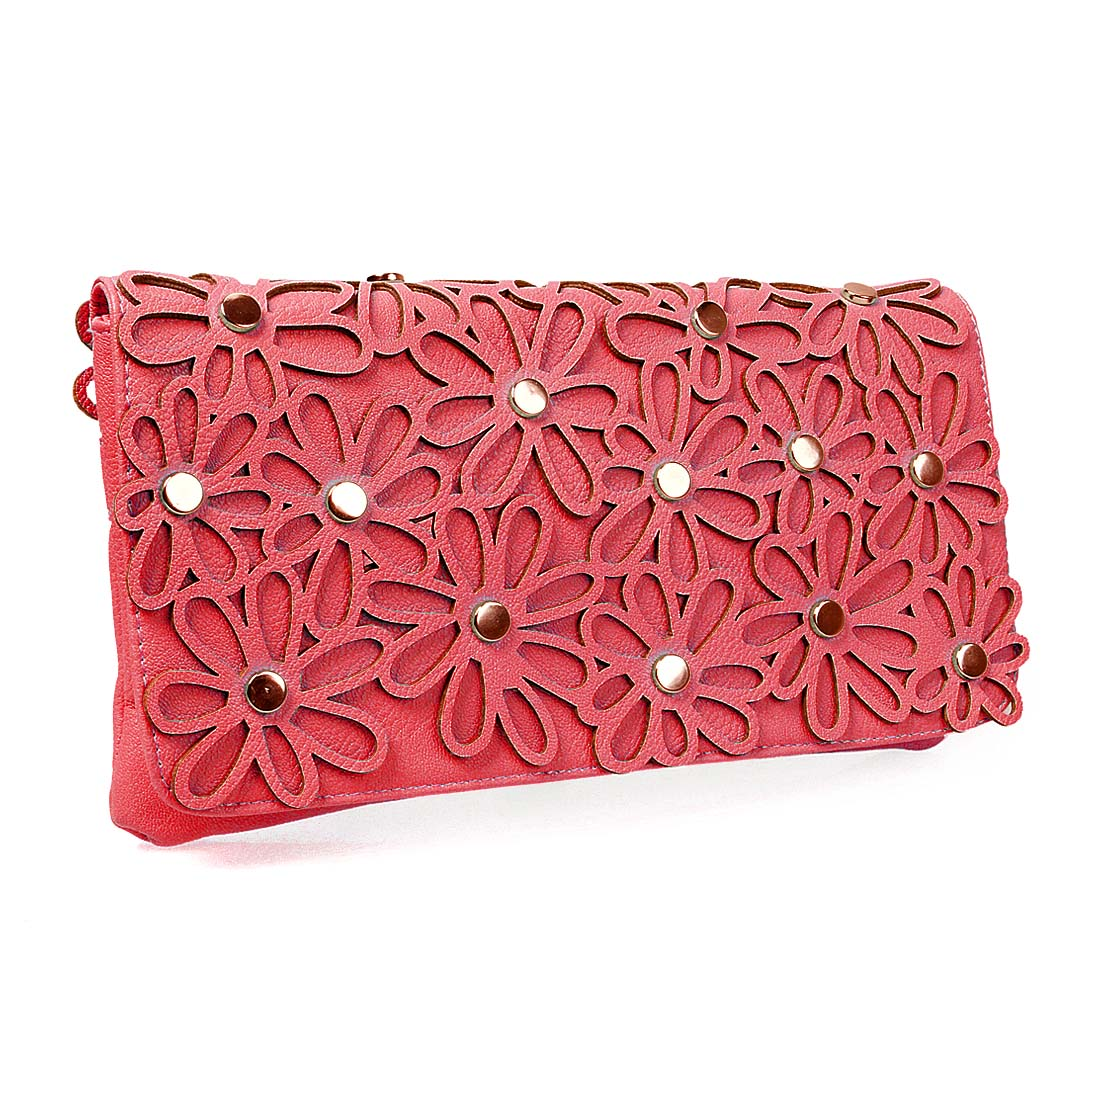 BMC Fashionable Faux Leather Daisy Style Cutout Design Statement Clutch Handbag